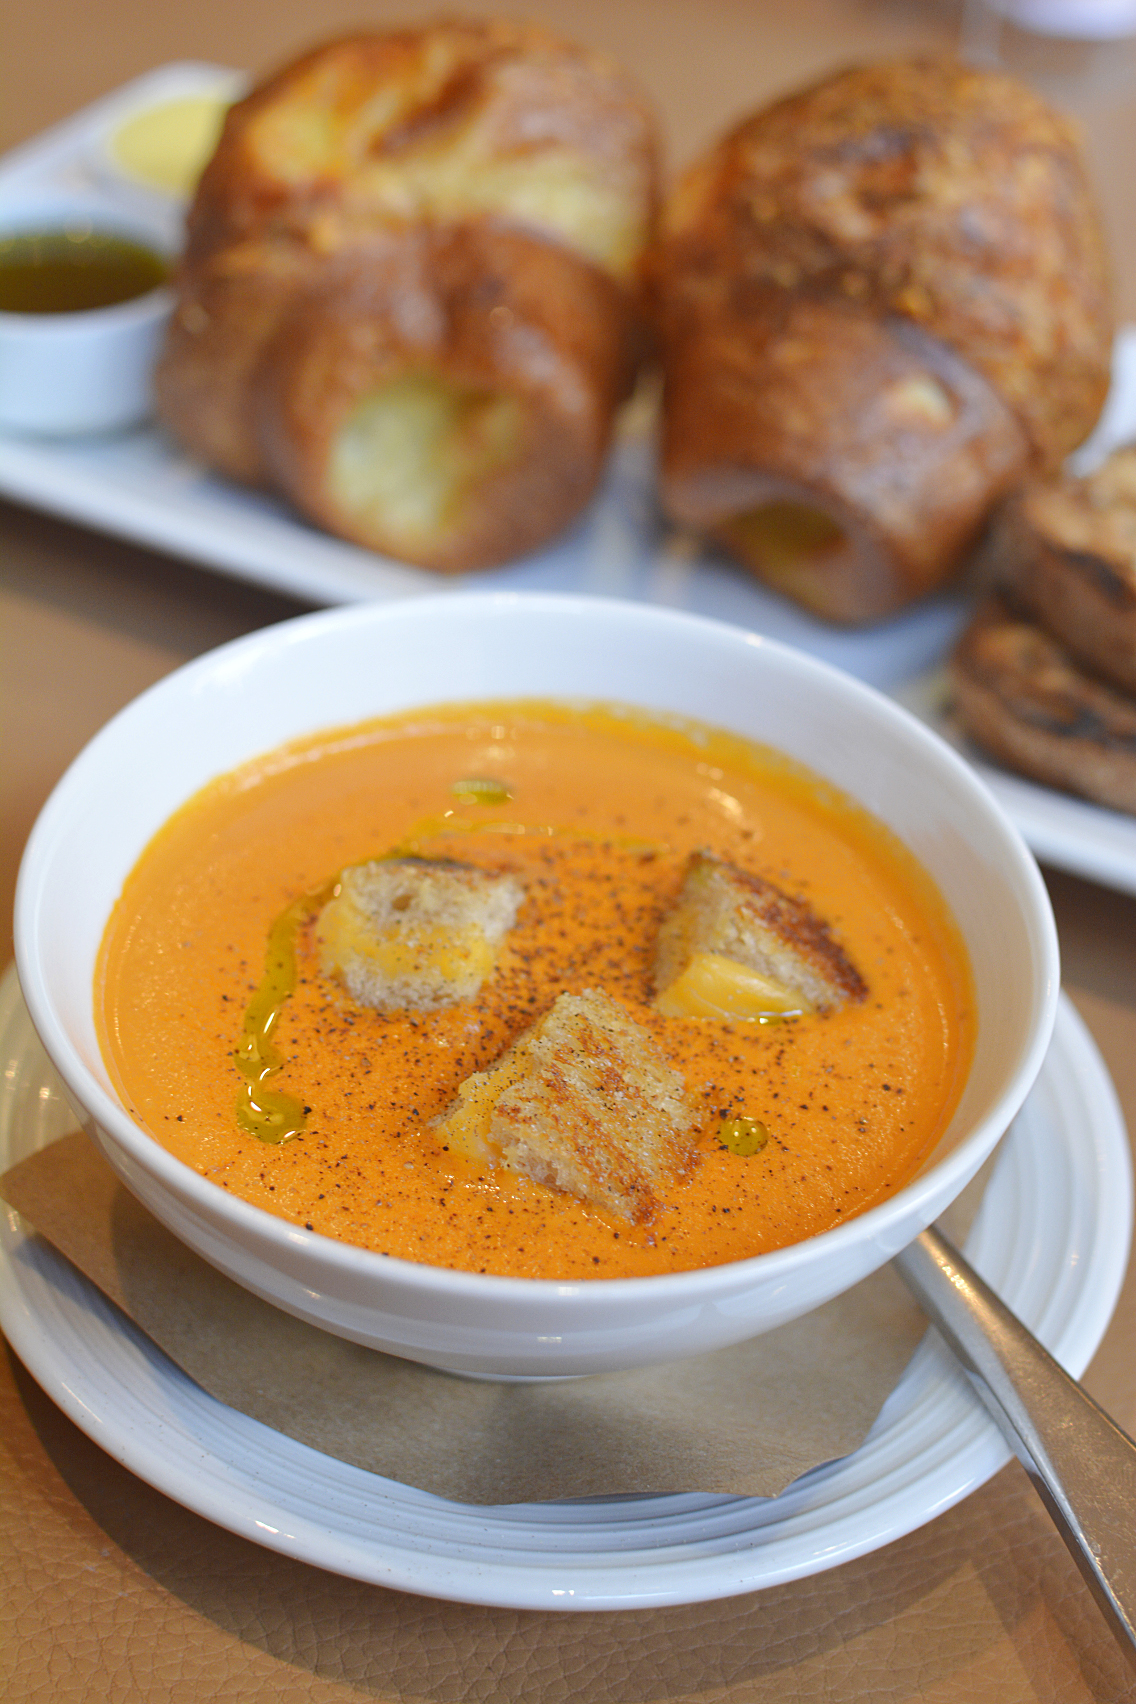 David Burke's Primehouse Chicago Grilled Cheese Tomato Soup 5